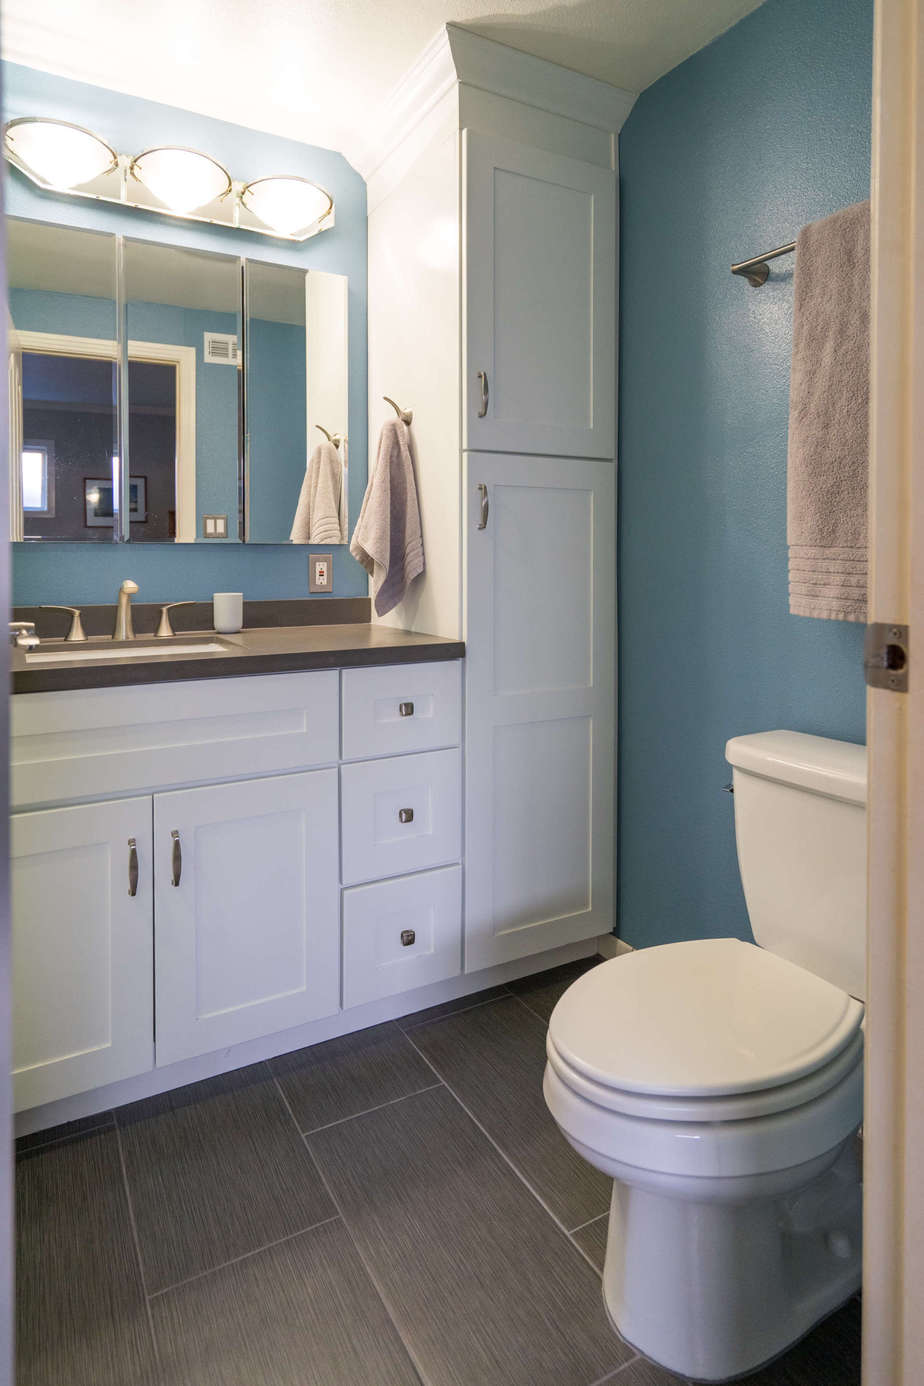 Bathroom Remodeling University small bathroom remodel university city - classic home improvements